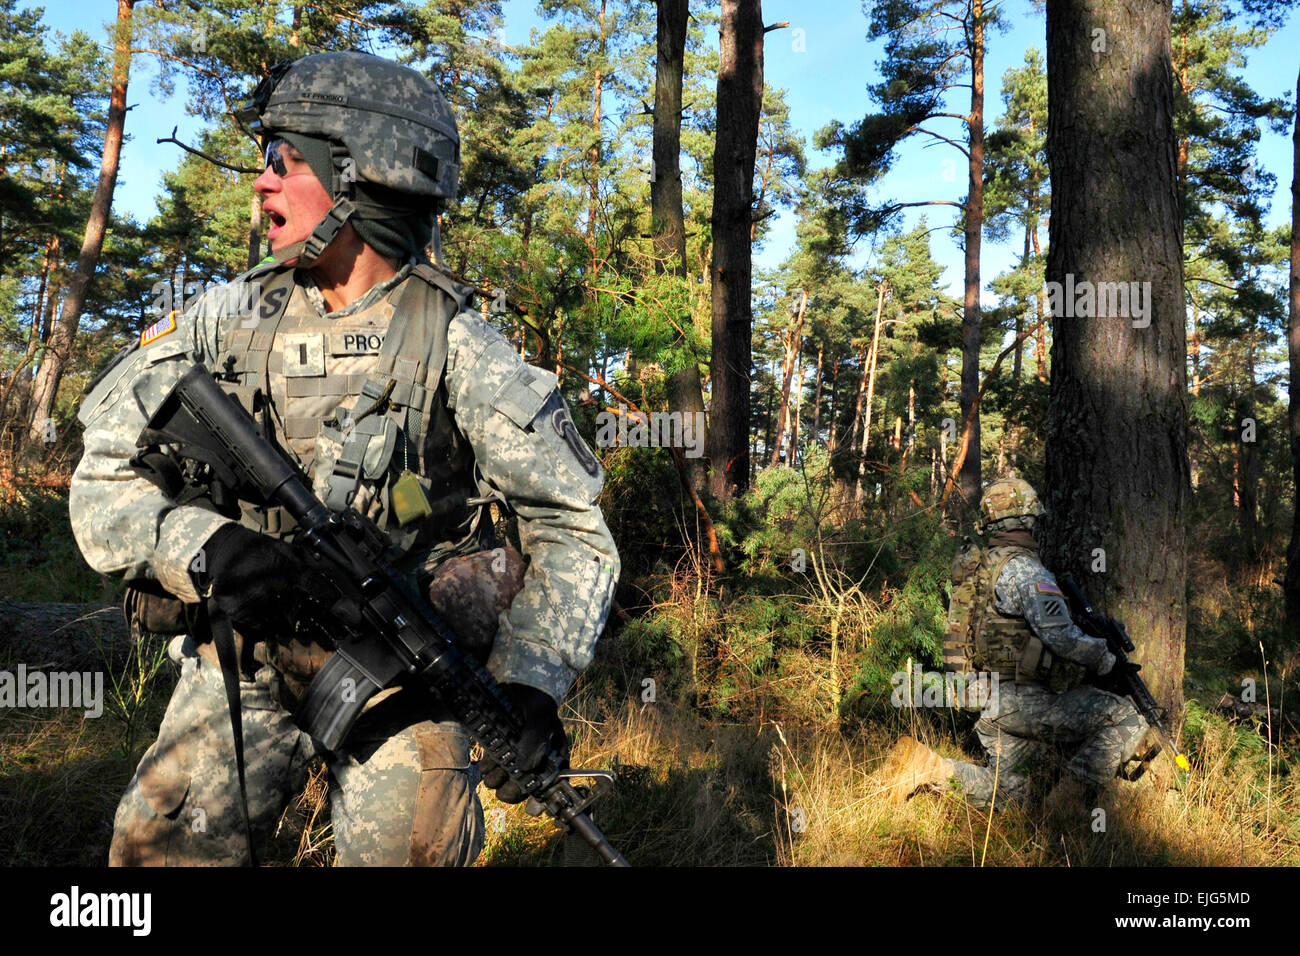 1st Lt. Emille Prosko of the 173rd Airborne Brigade Combat Team and graduate of West Point gives orders to her platoon - Stock Image